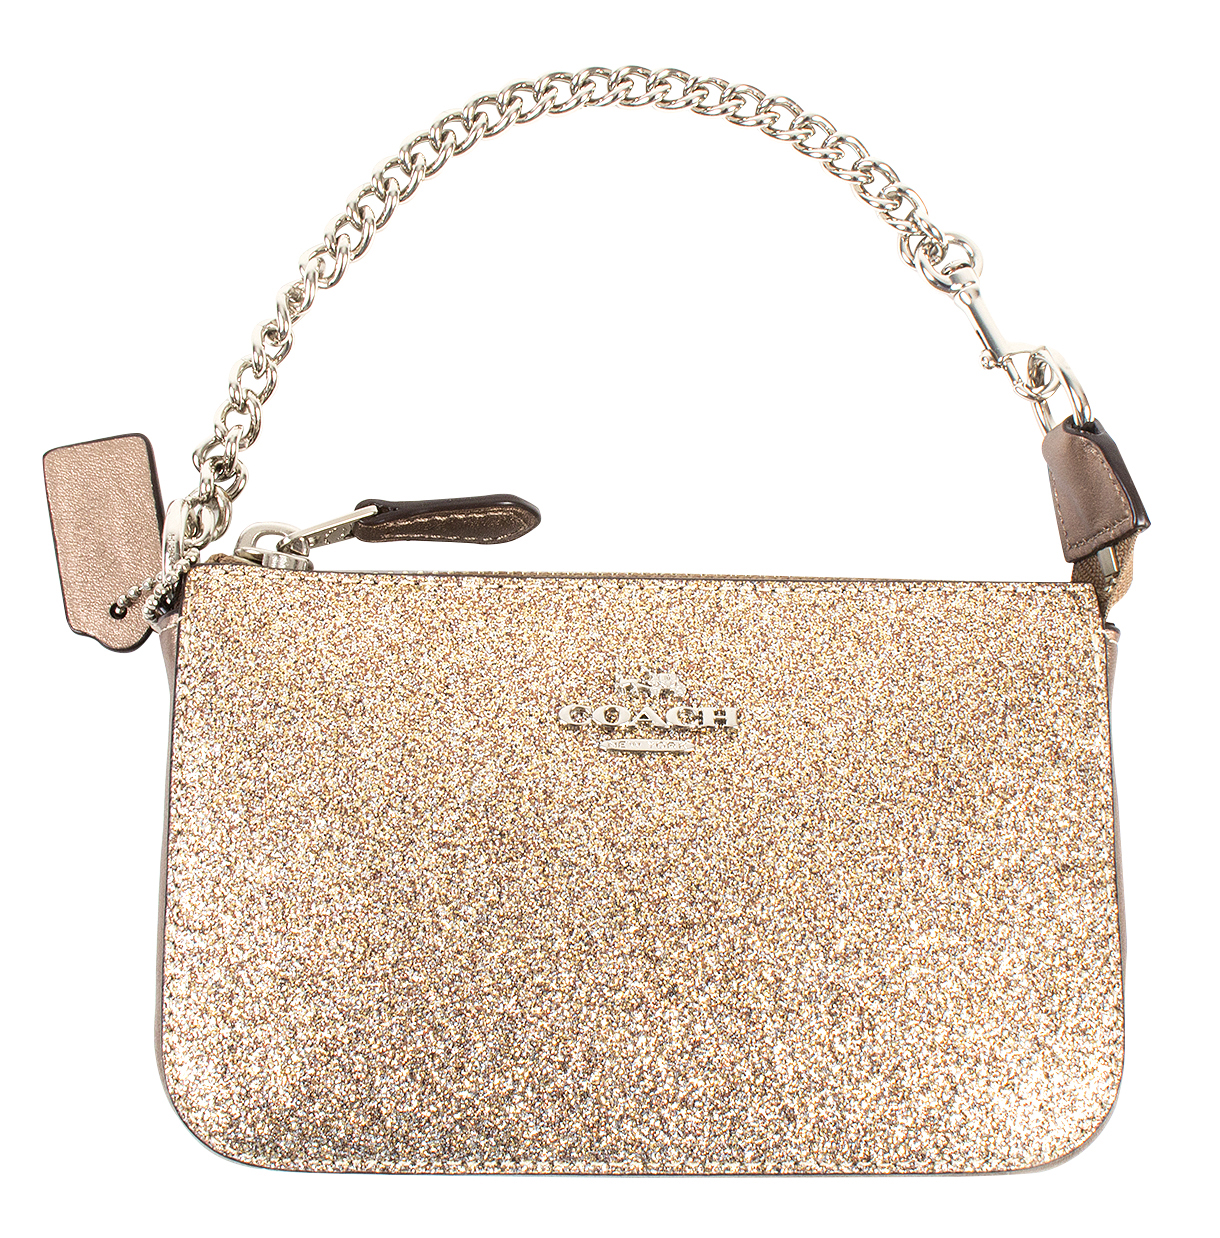 "Coach ""Glitter Nolita Wristlet,"" $85 at Belk of Mount Pleasant"